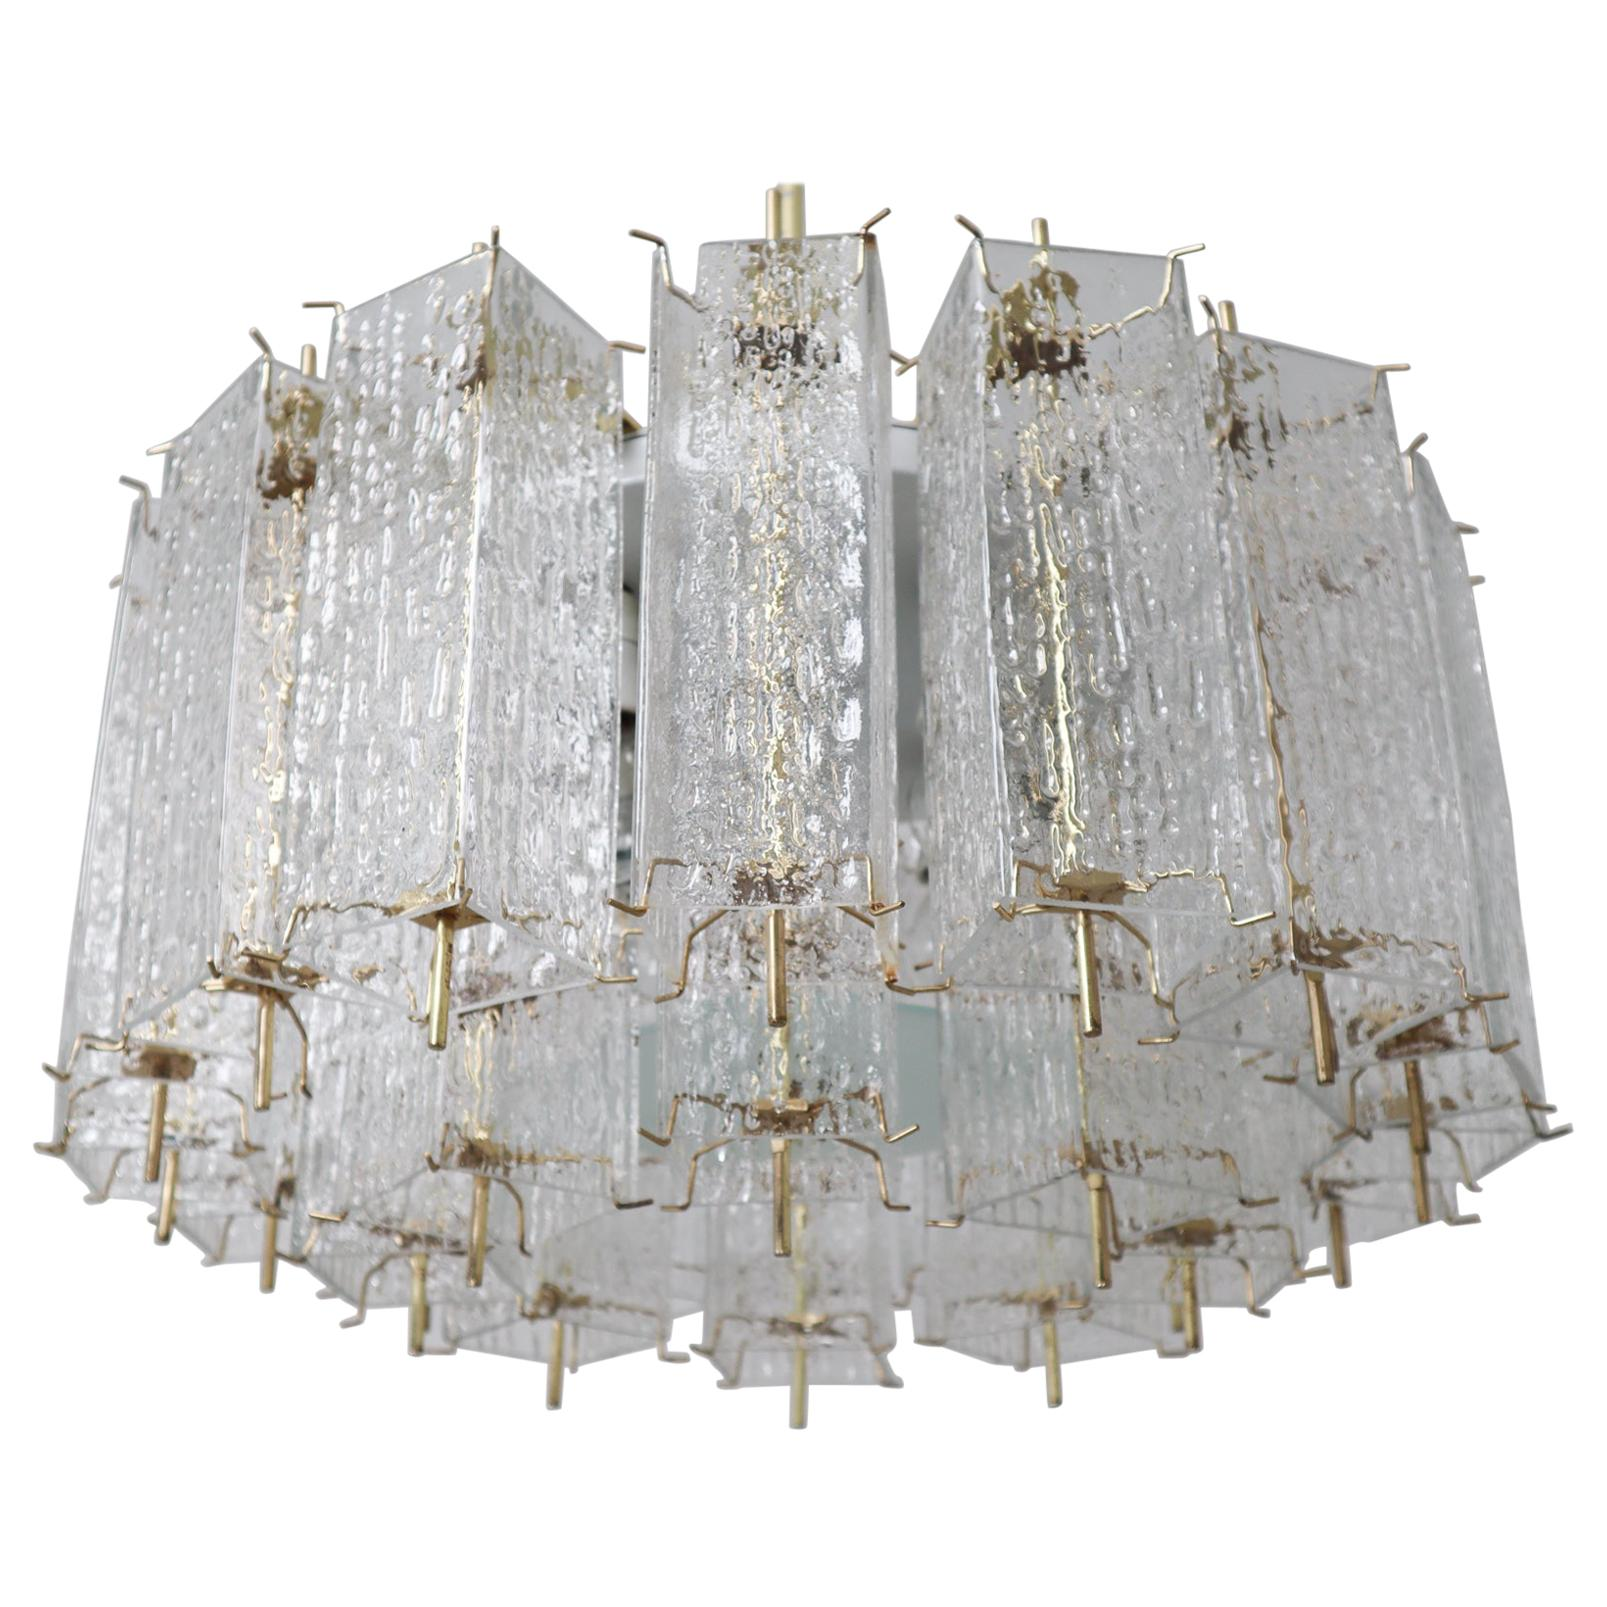 Large Midcentury Chandelier with Ice Glass Tubes in Brass Fixture Europe, 1960s